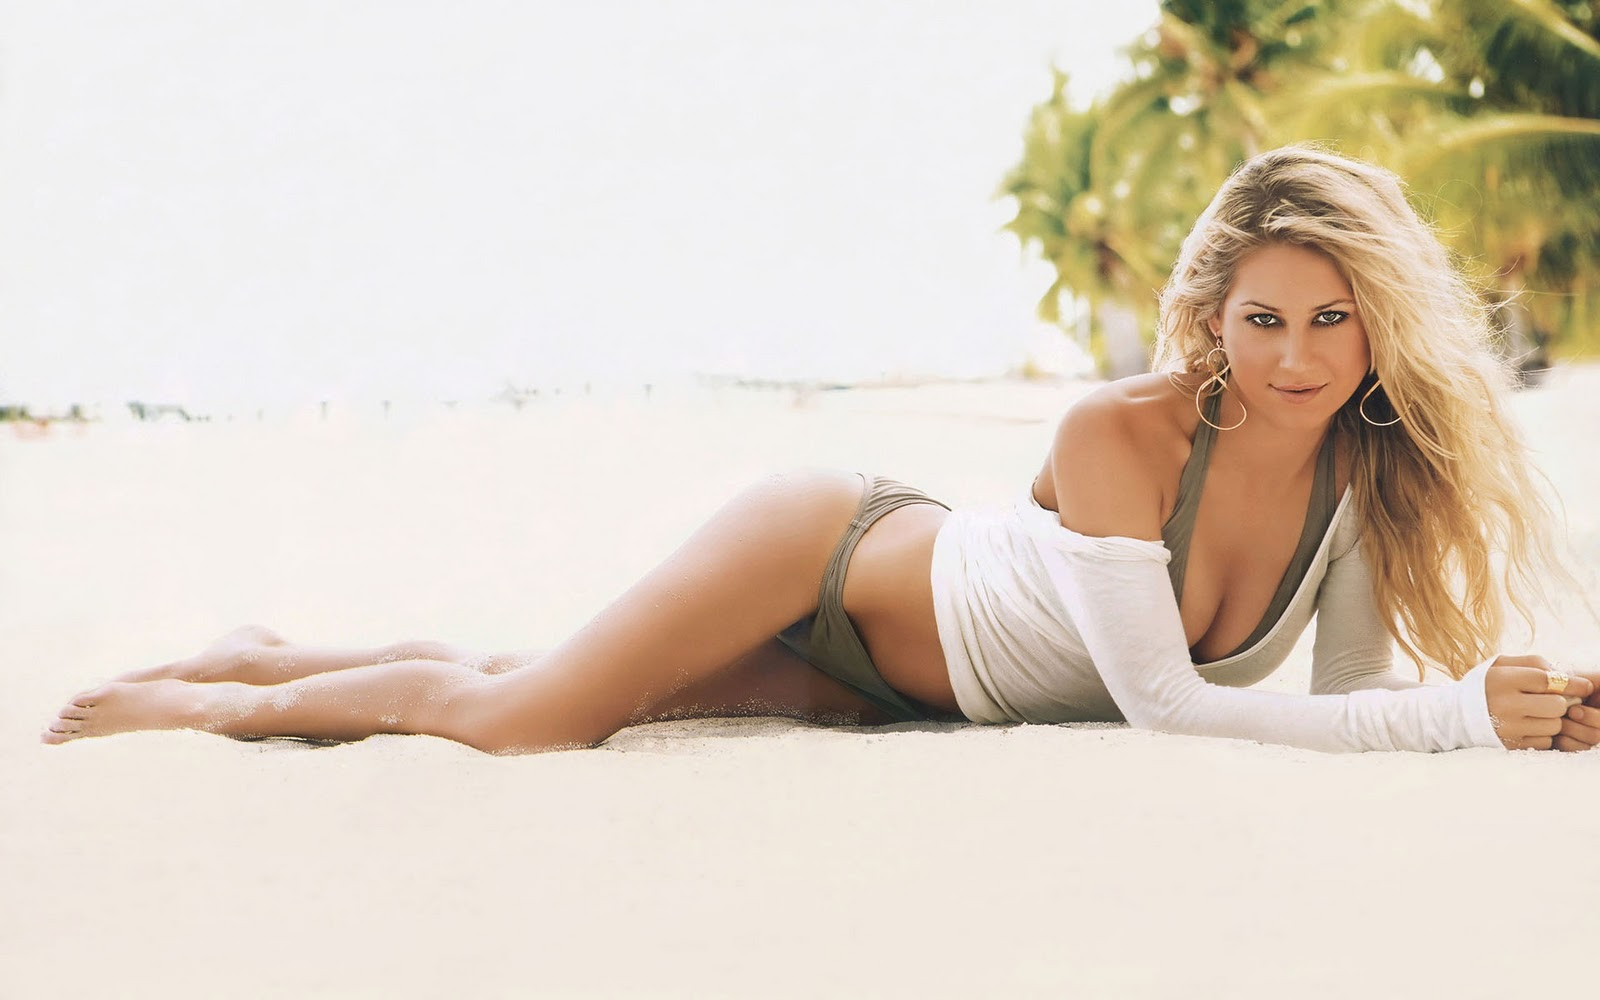 wallpaper Anna Kournikova Wallpaper